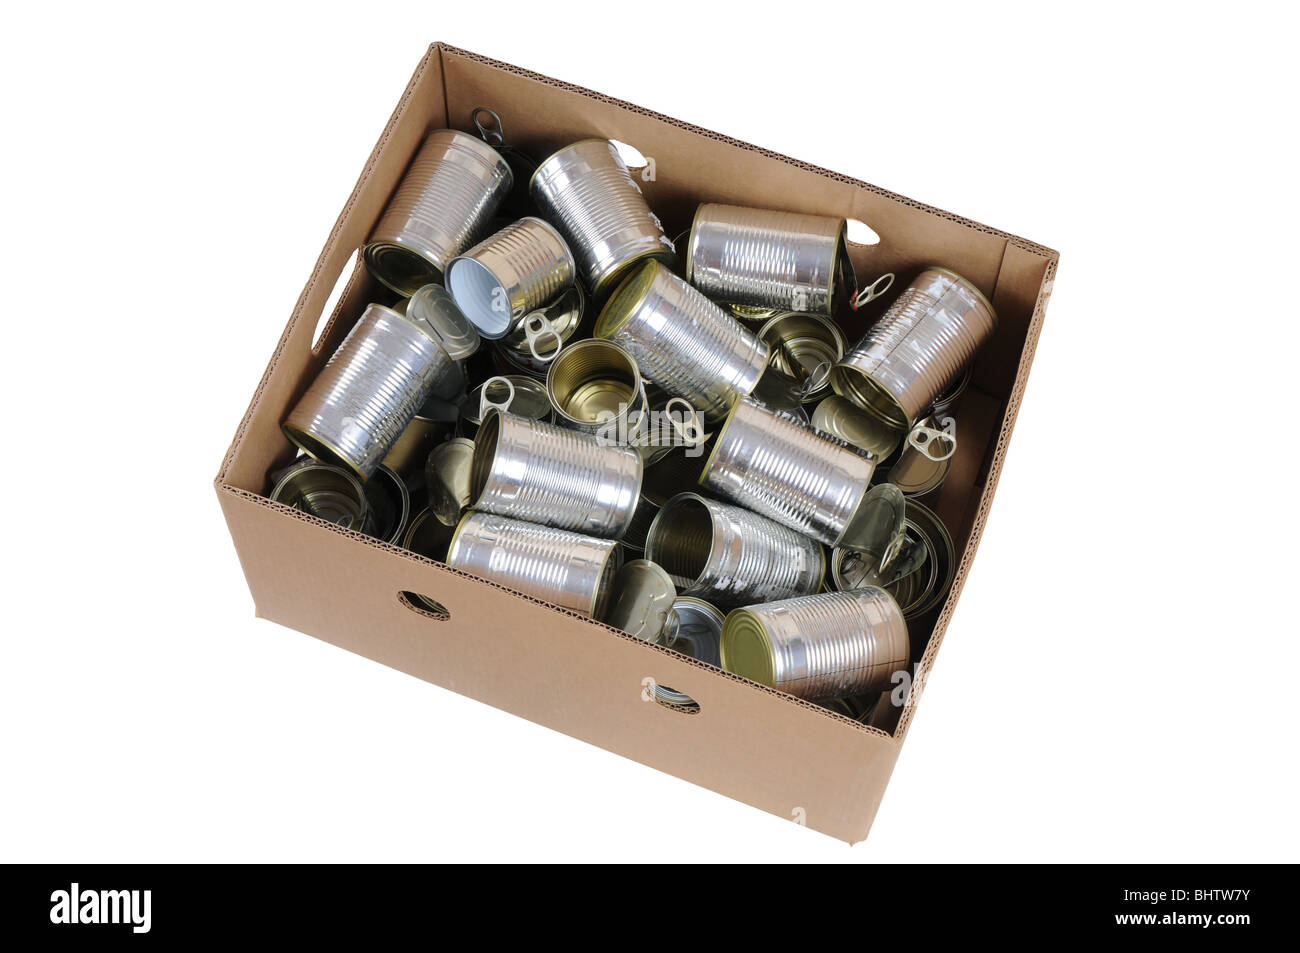 Paper box full of used cans ready for recycling. - Stock Image